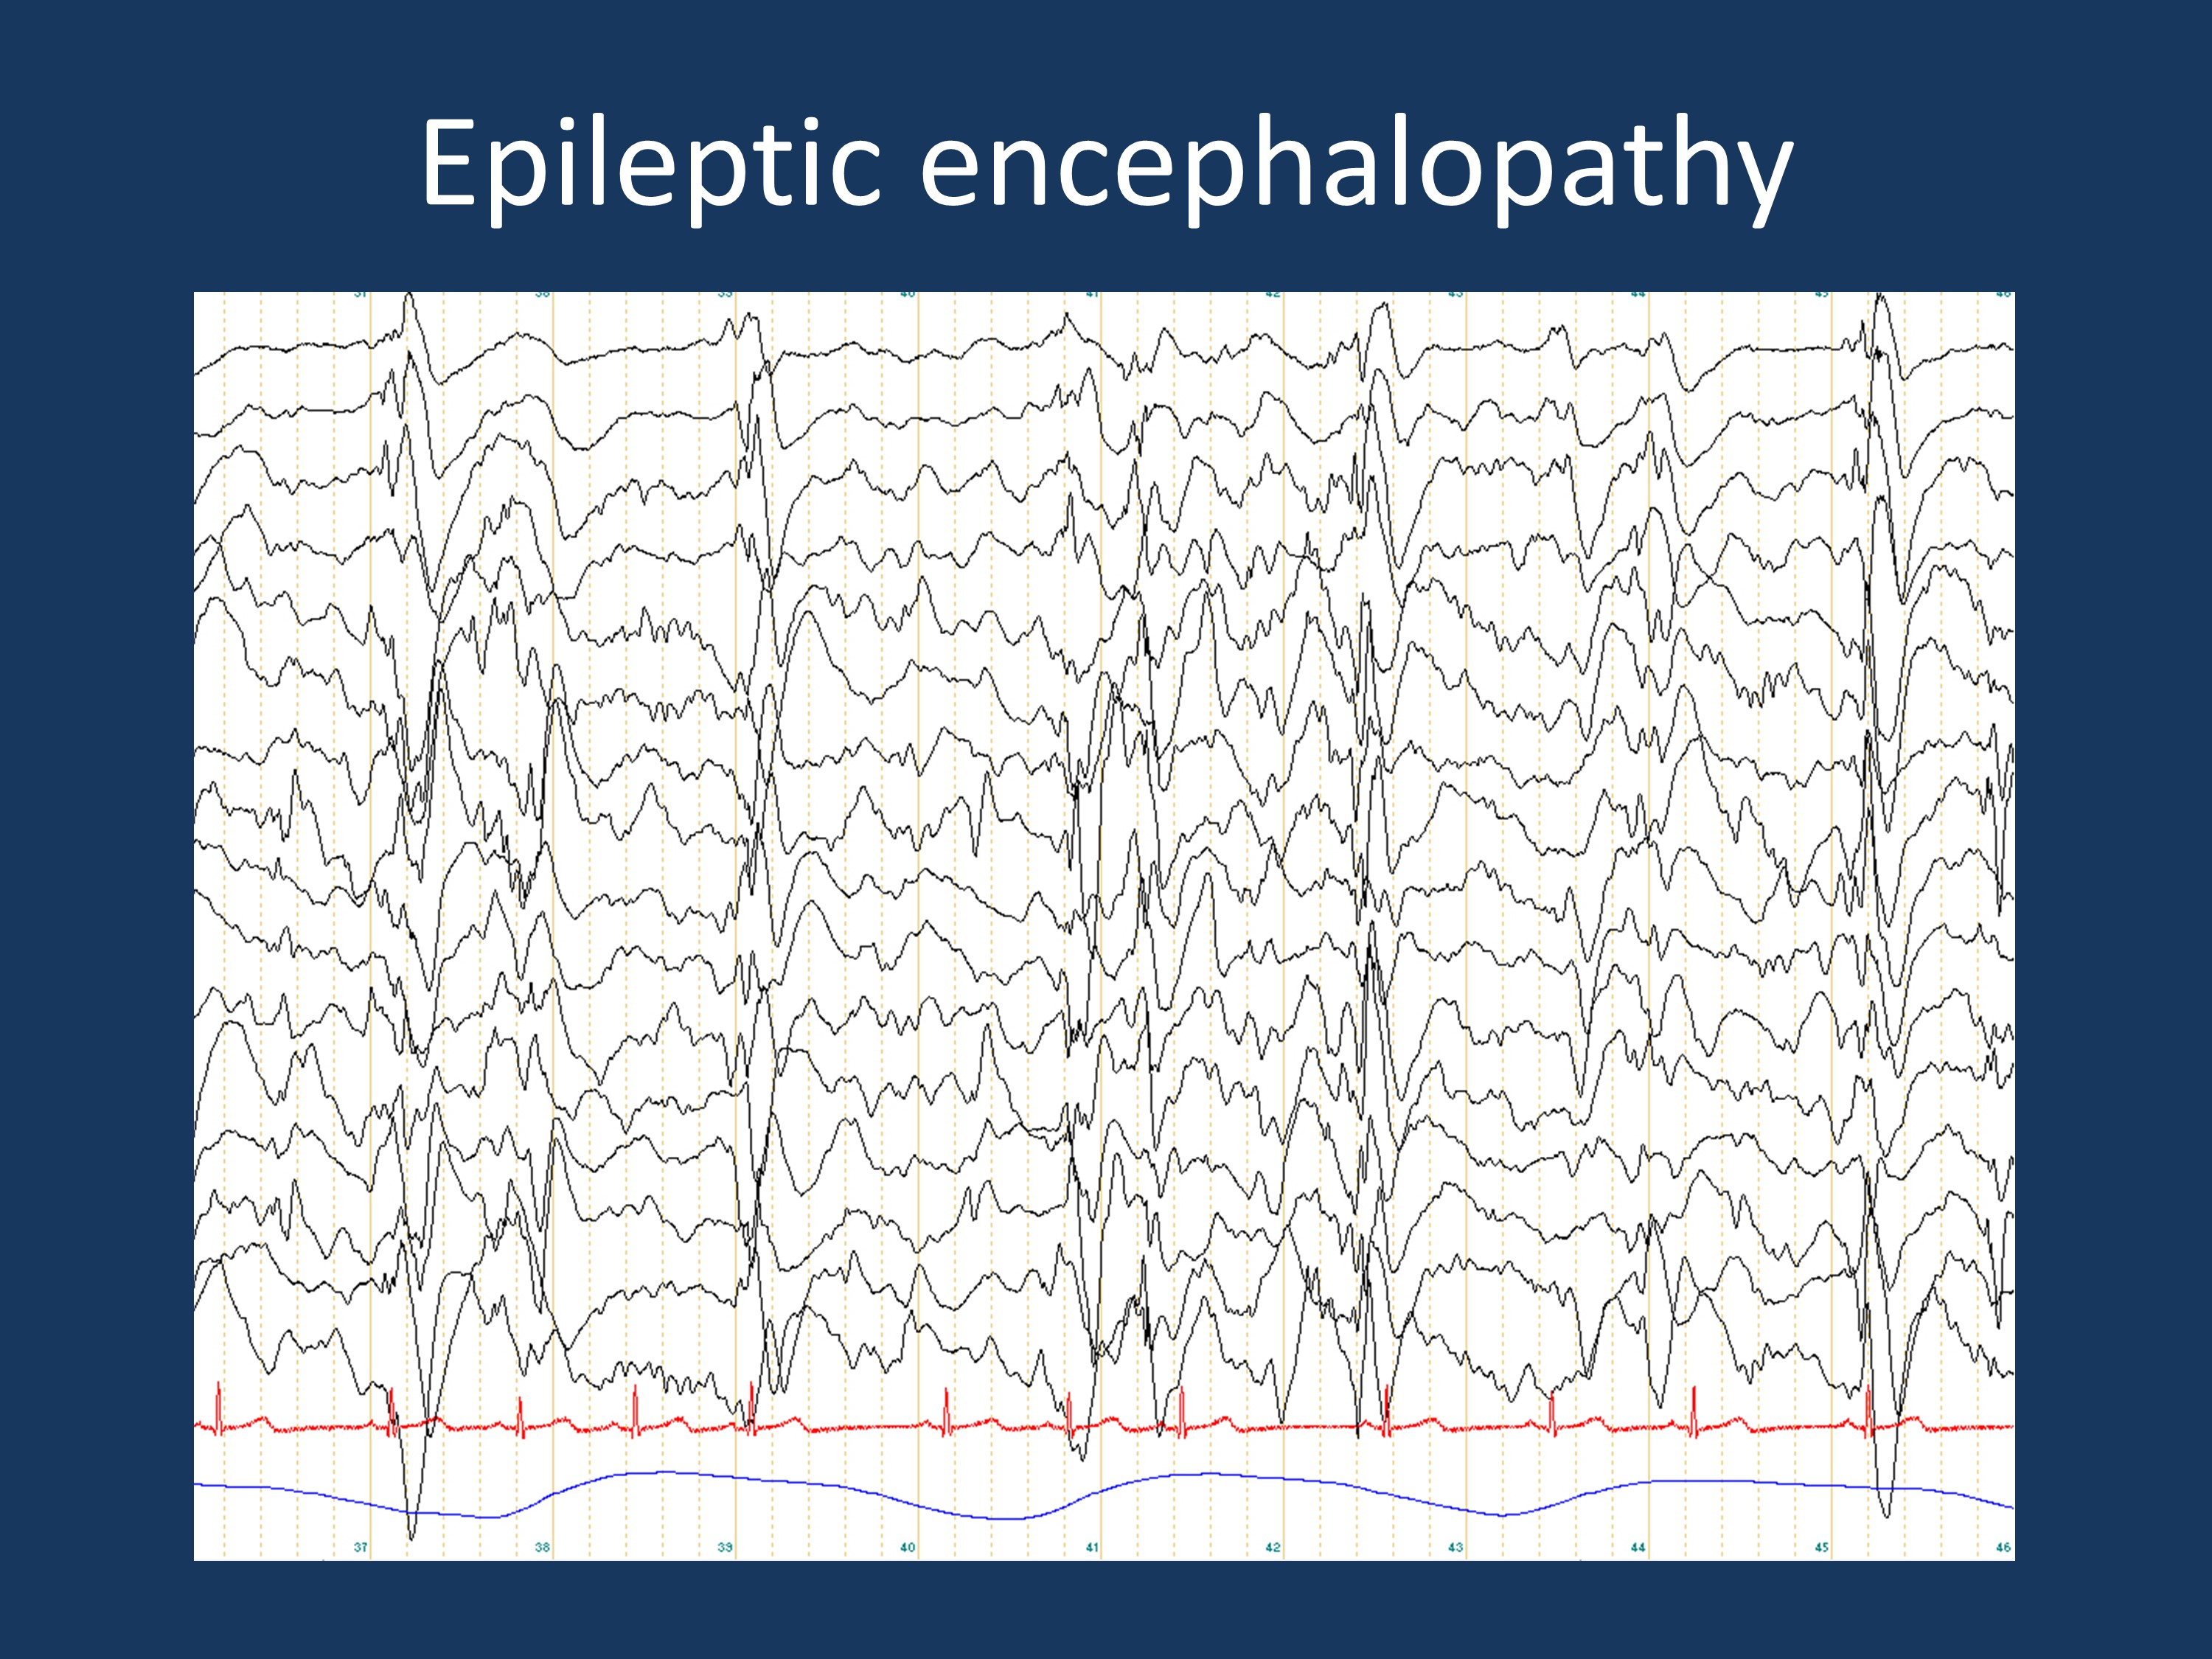 EEG findings in a patient with Lennox-Gastaut Syndrome. The EEG shows the finding of continuous slow spike-wave activity, indicating a profound disturbance of cortical function leading to an epileptic encephalopathy. The current blog post discusses whether the concept of epileptic encephalopathy should be used as a diagnostic category or should be reserved for a particular state of the patient's disease.